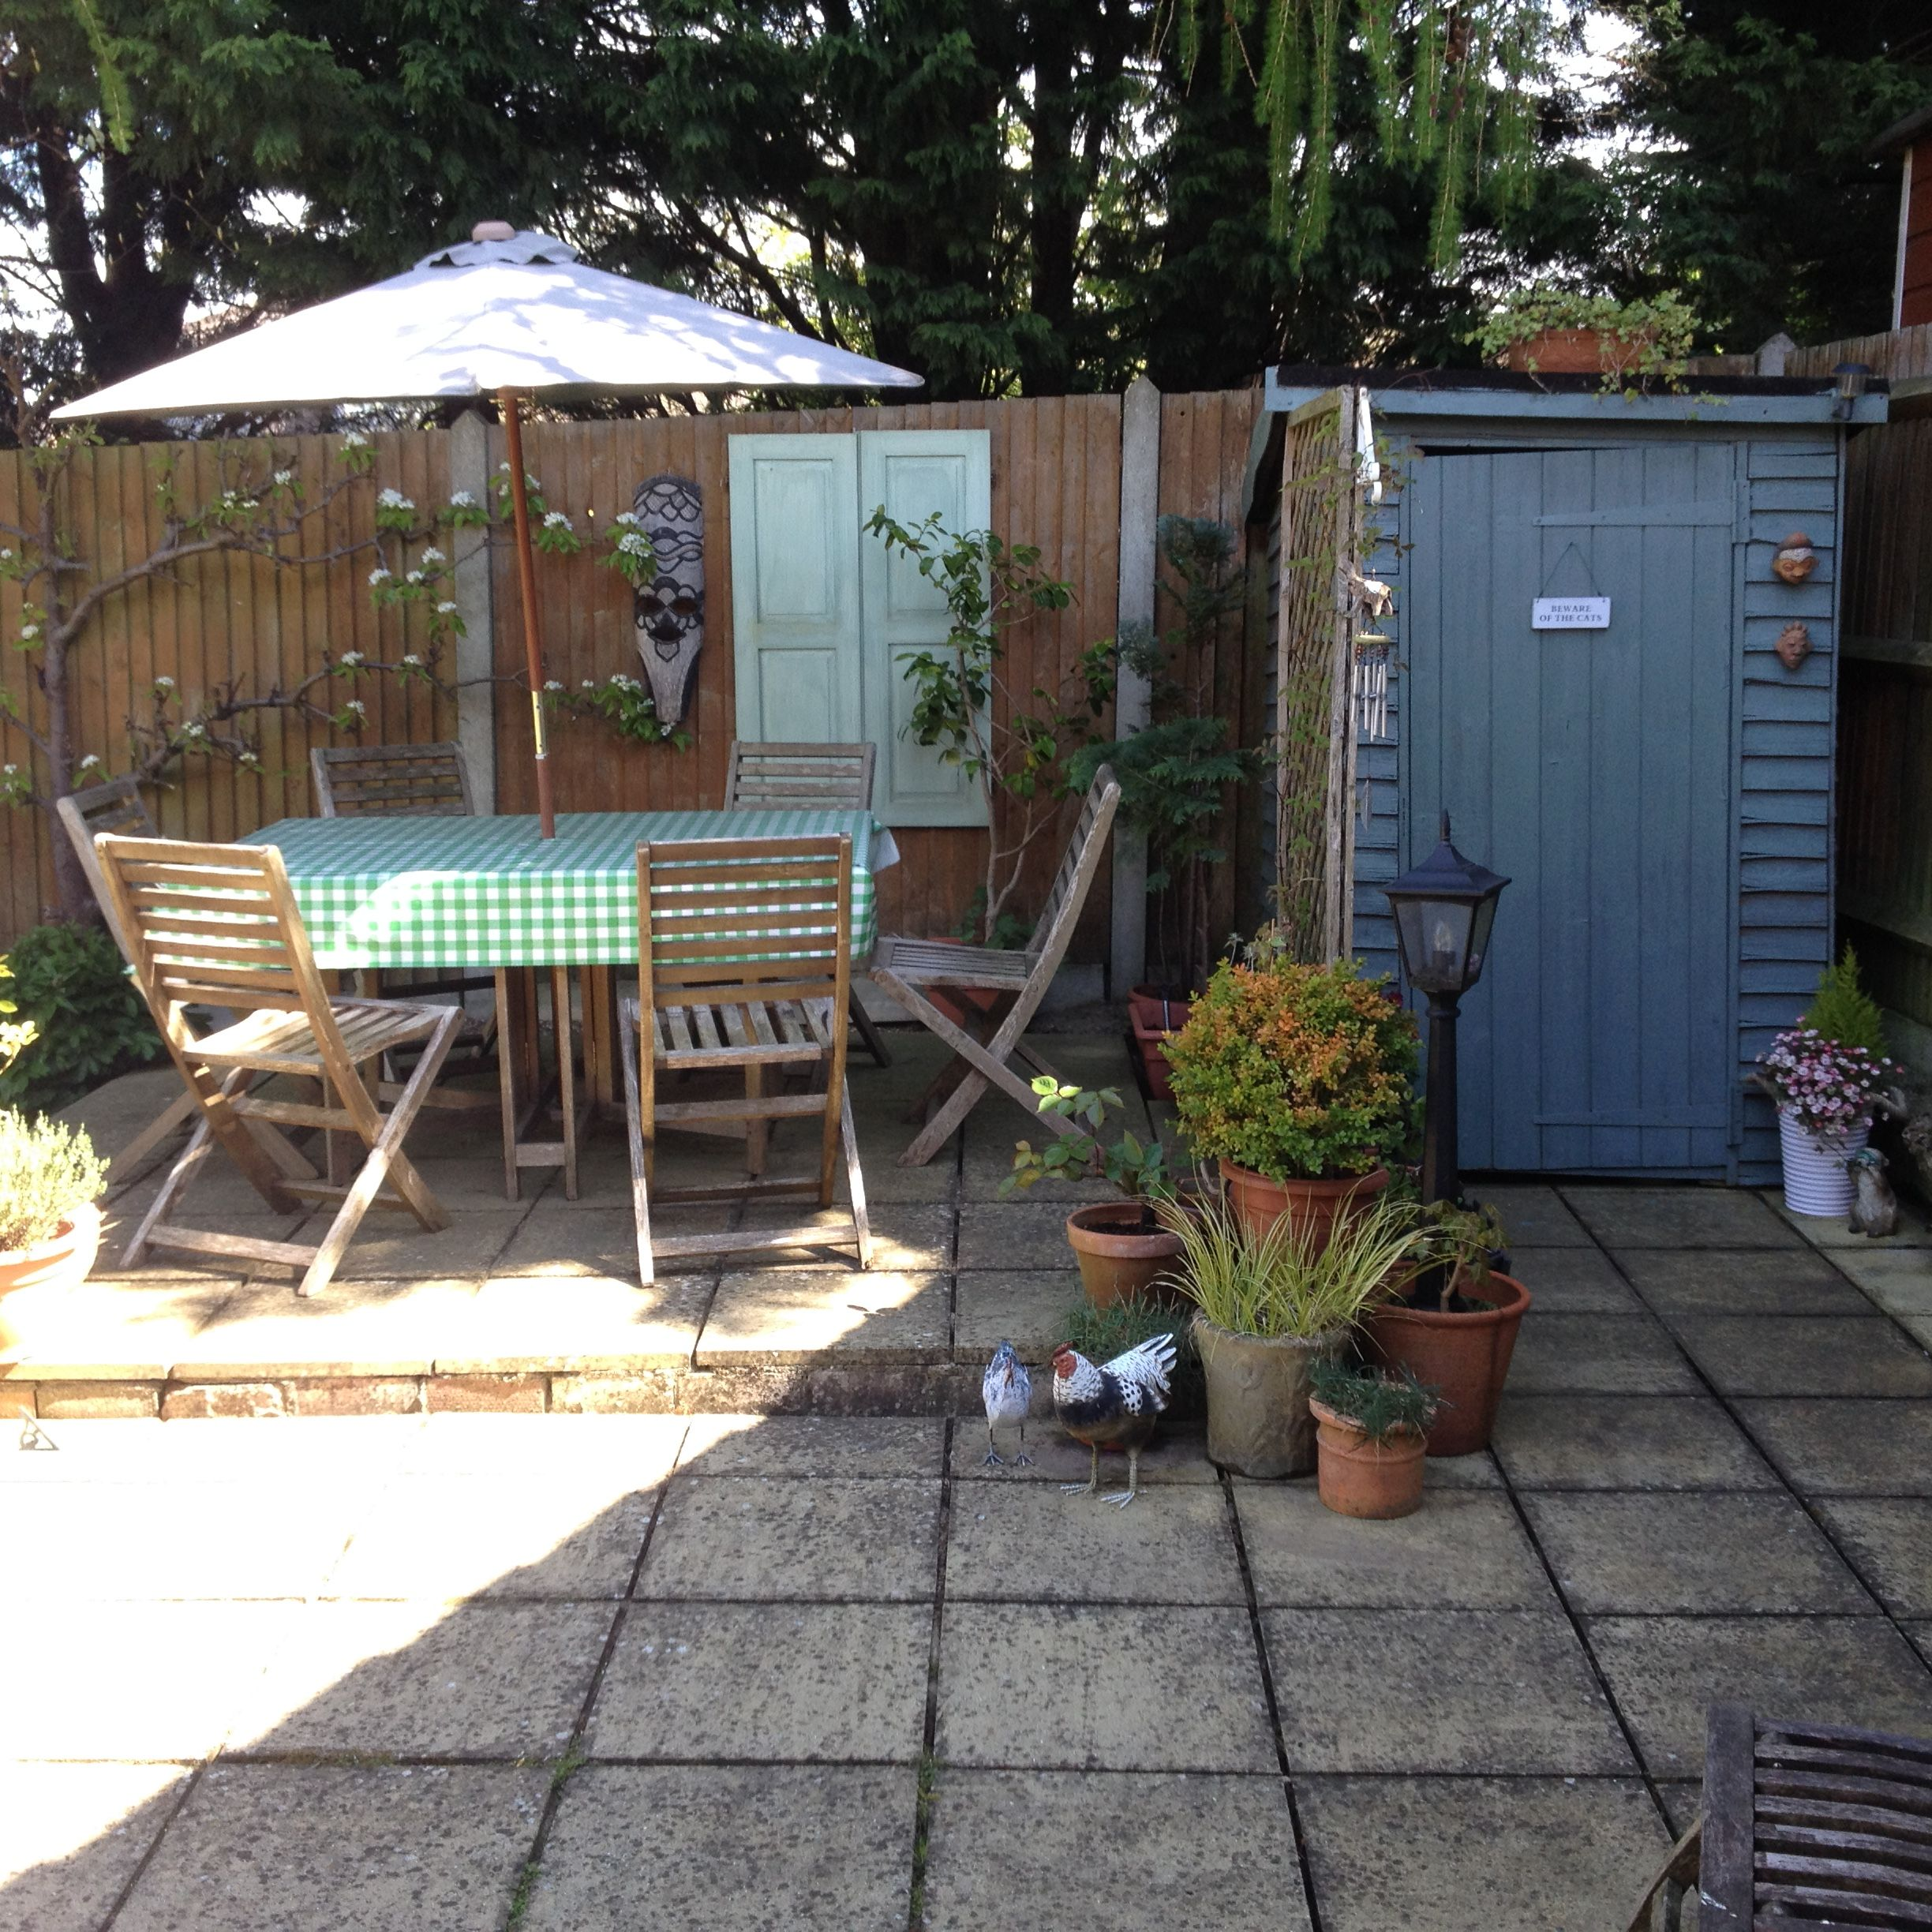 Garden Sheds B Q revamped little old garden shed painted in b&q cuprinol garden